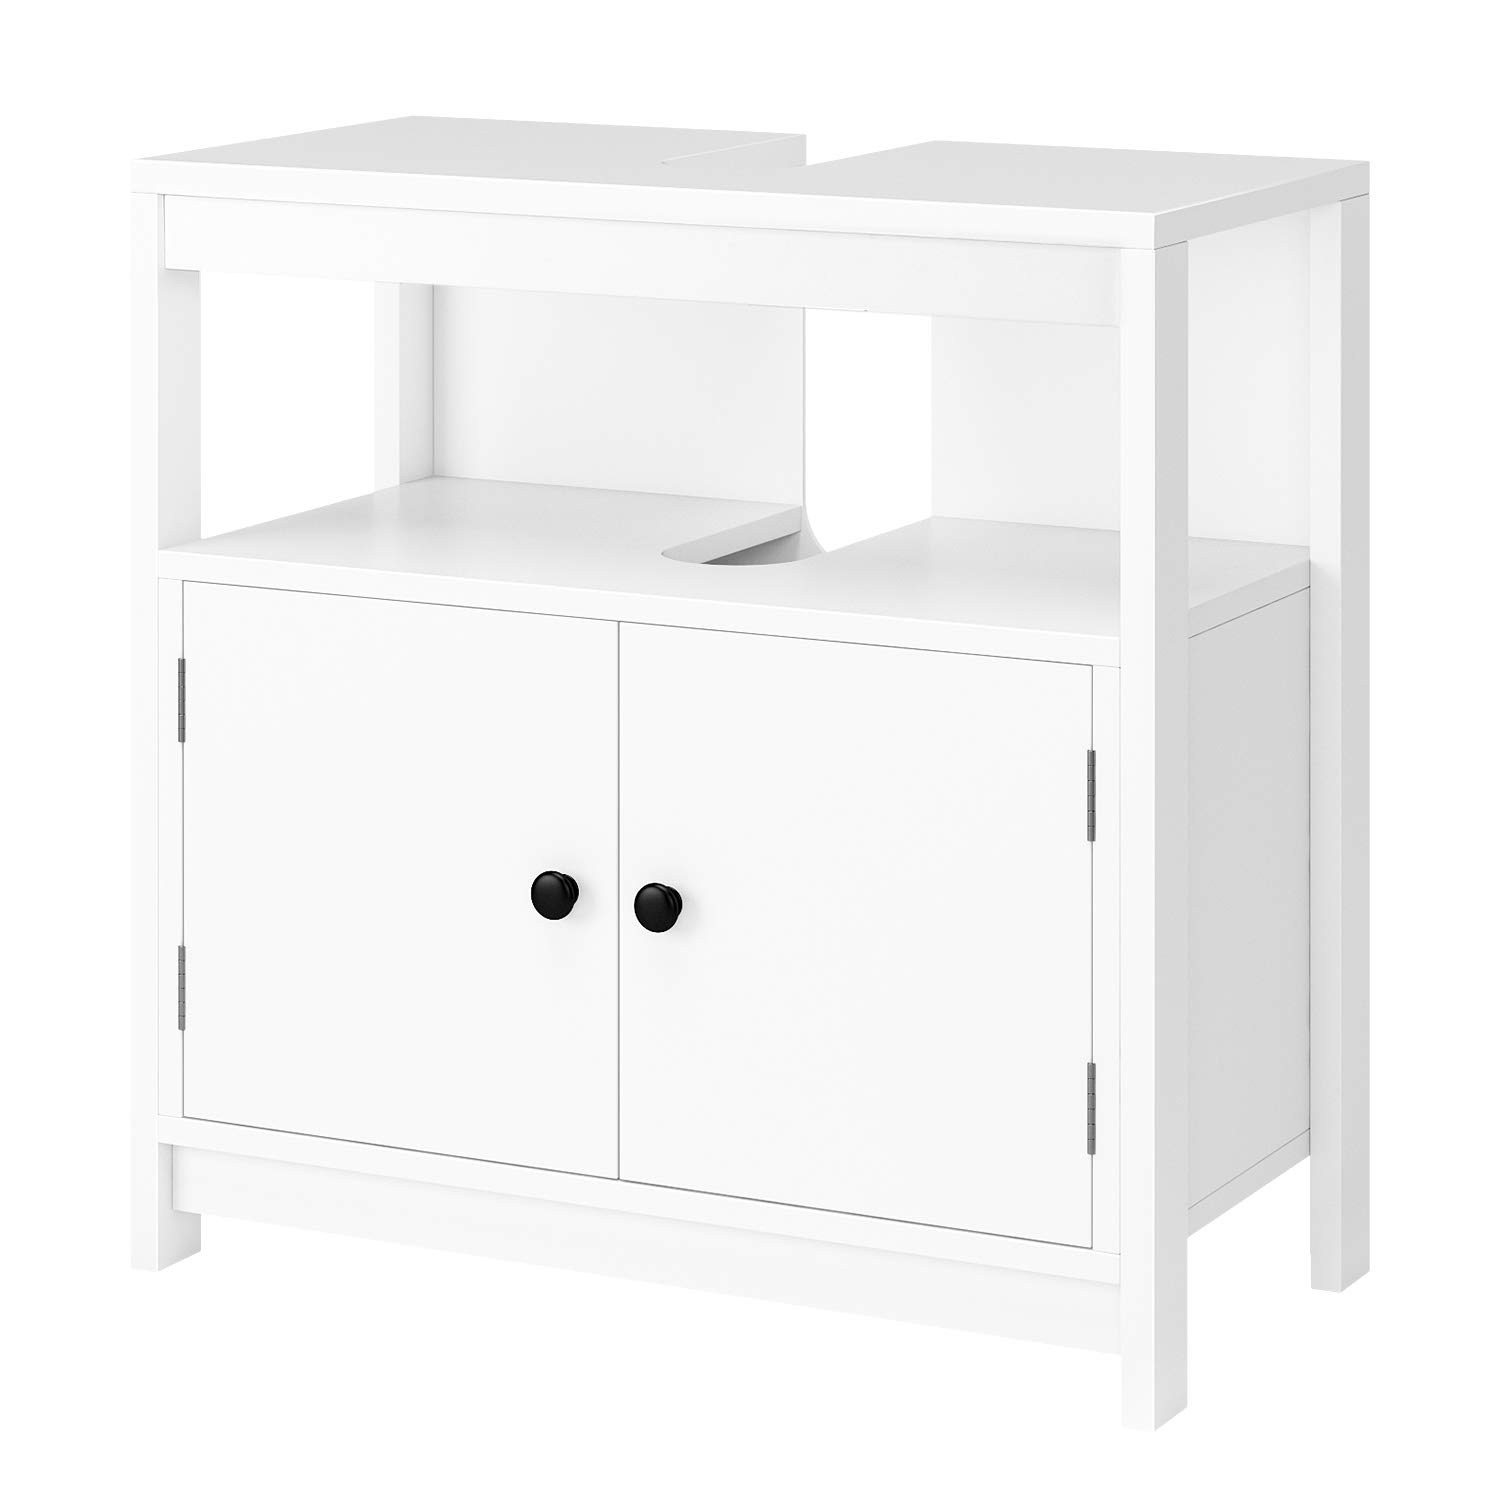 Homfa Under Sink Bathroom Cabinet Basin Storage Cupboard Floor Cabinet Double Doors 1 Compartment White 60x30x60cm HF